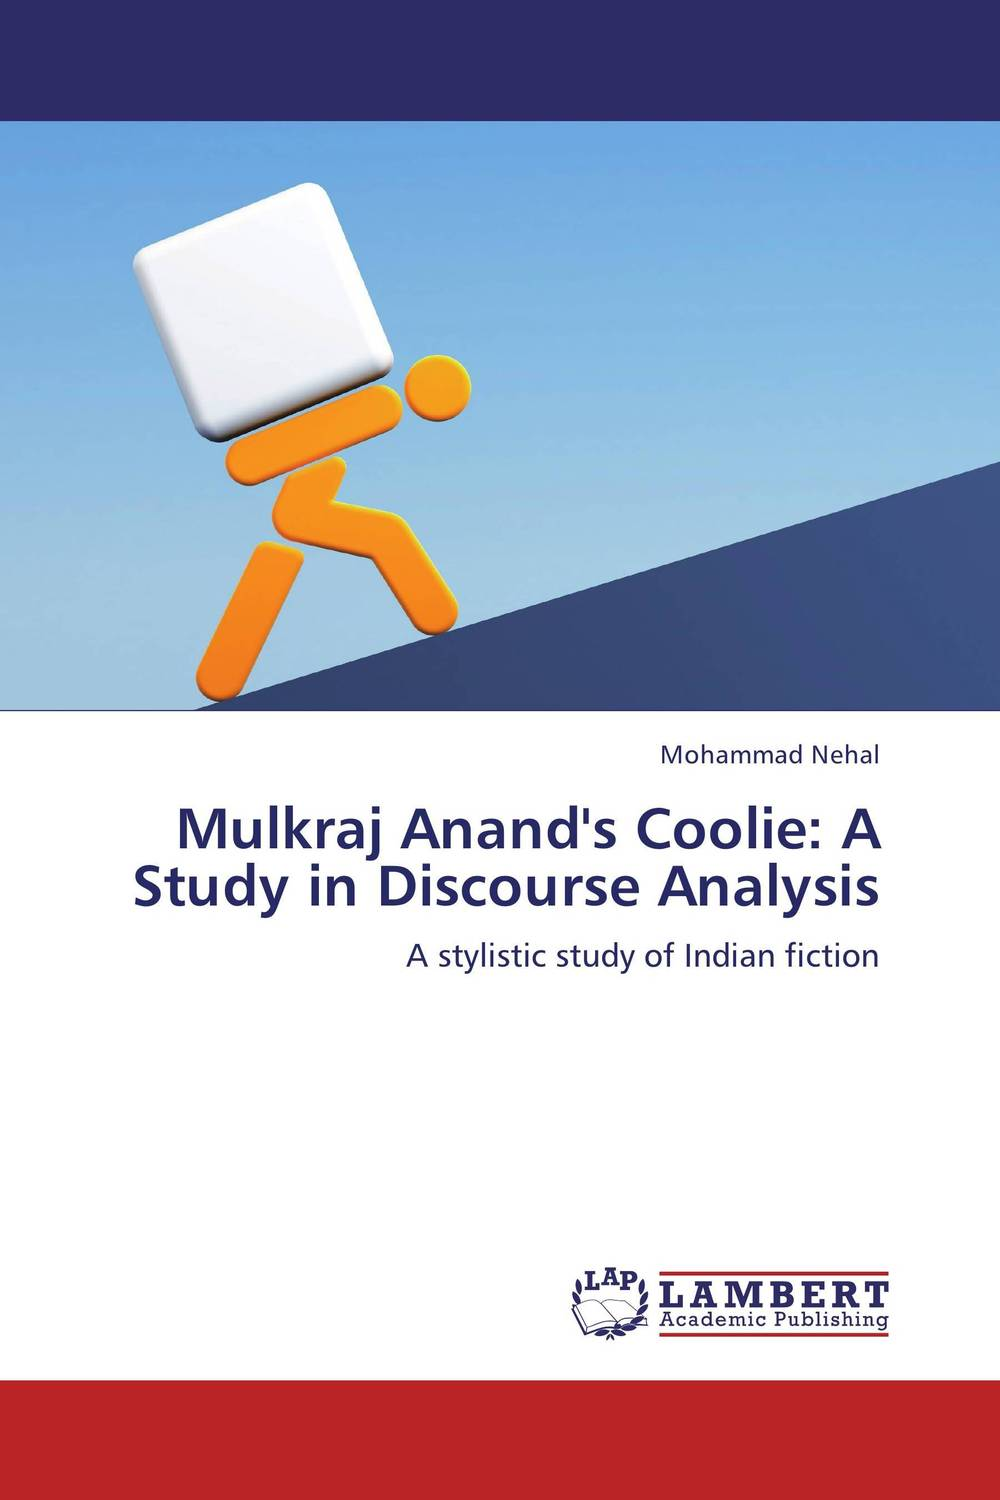 Mulkraj Anand's Coolie: A Study in Discourse Analysis communities of discourse – ideology